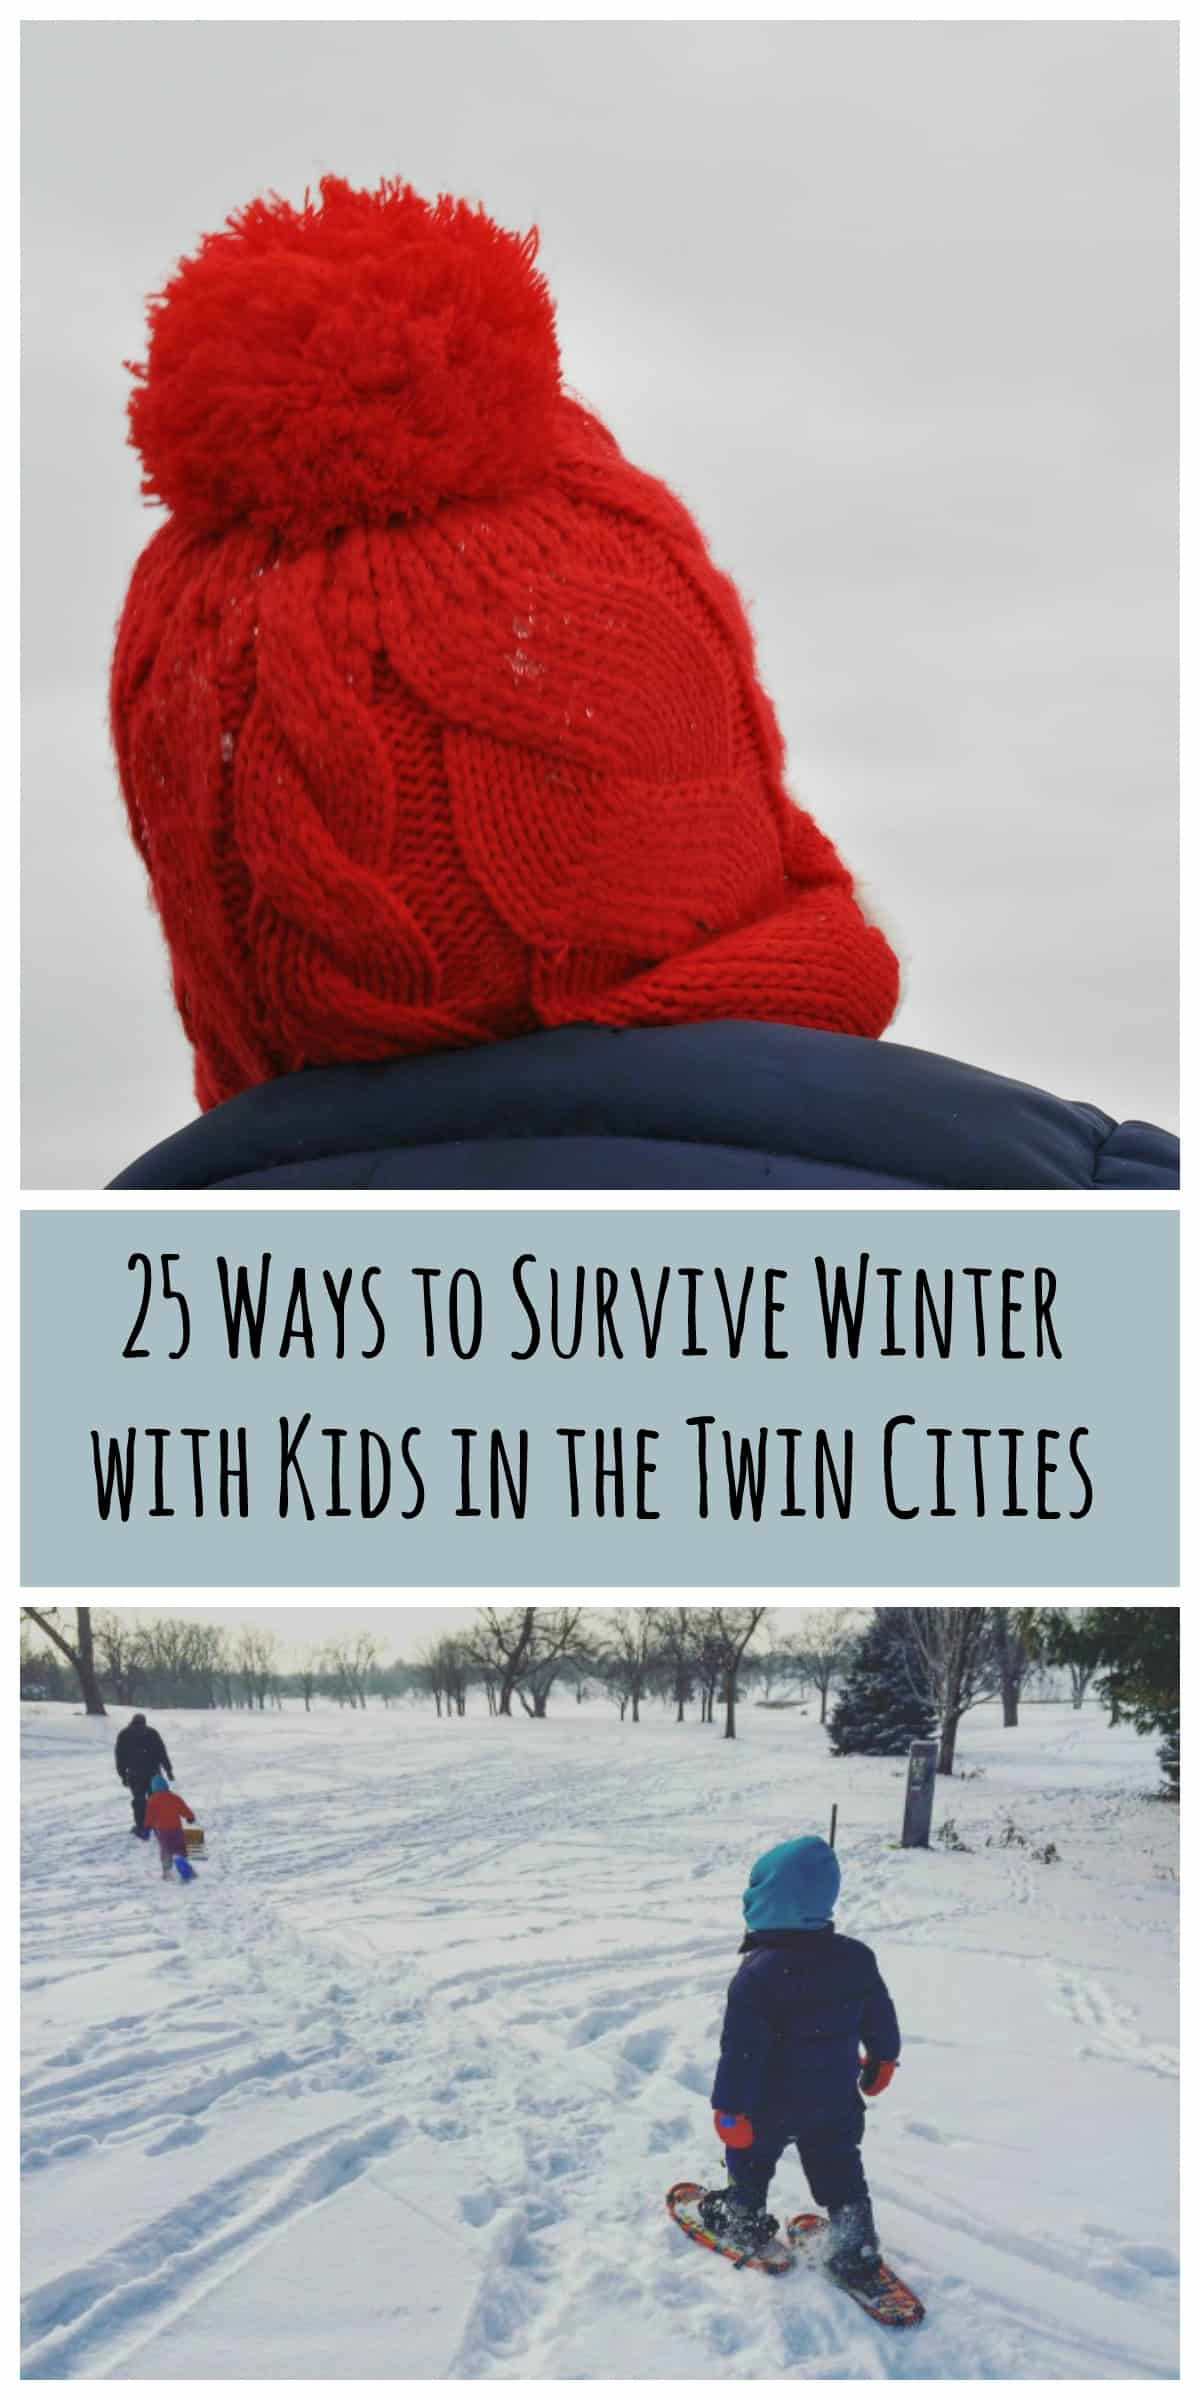 25 ways to survive winter with kids in the twin cities. Black Bedroom Furniture Sets. Home Design Ideas